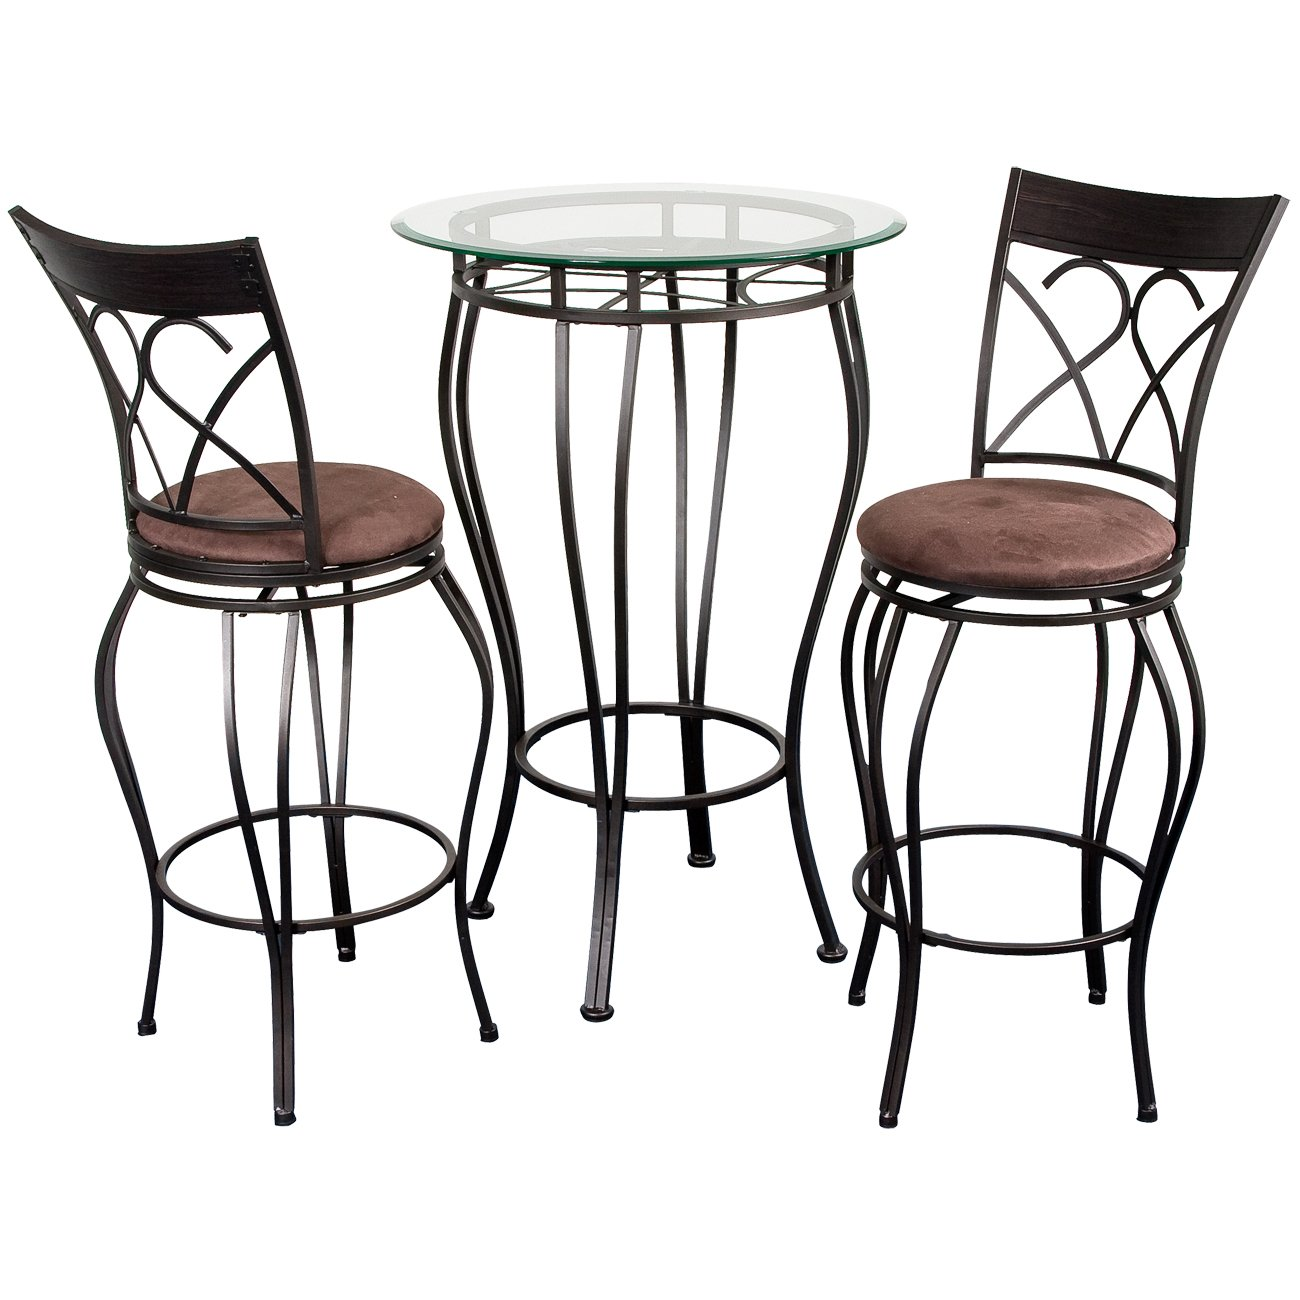 Amazoncom Home Source Industries Fancy Bistro Decorative Metal - Bistro table set